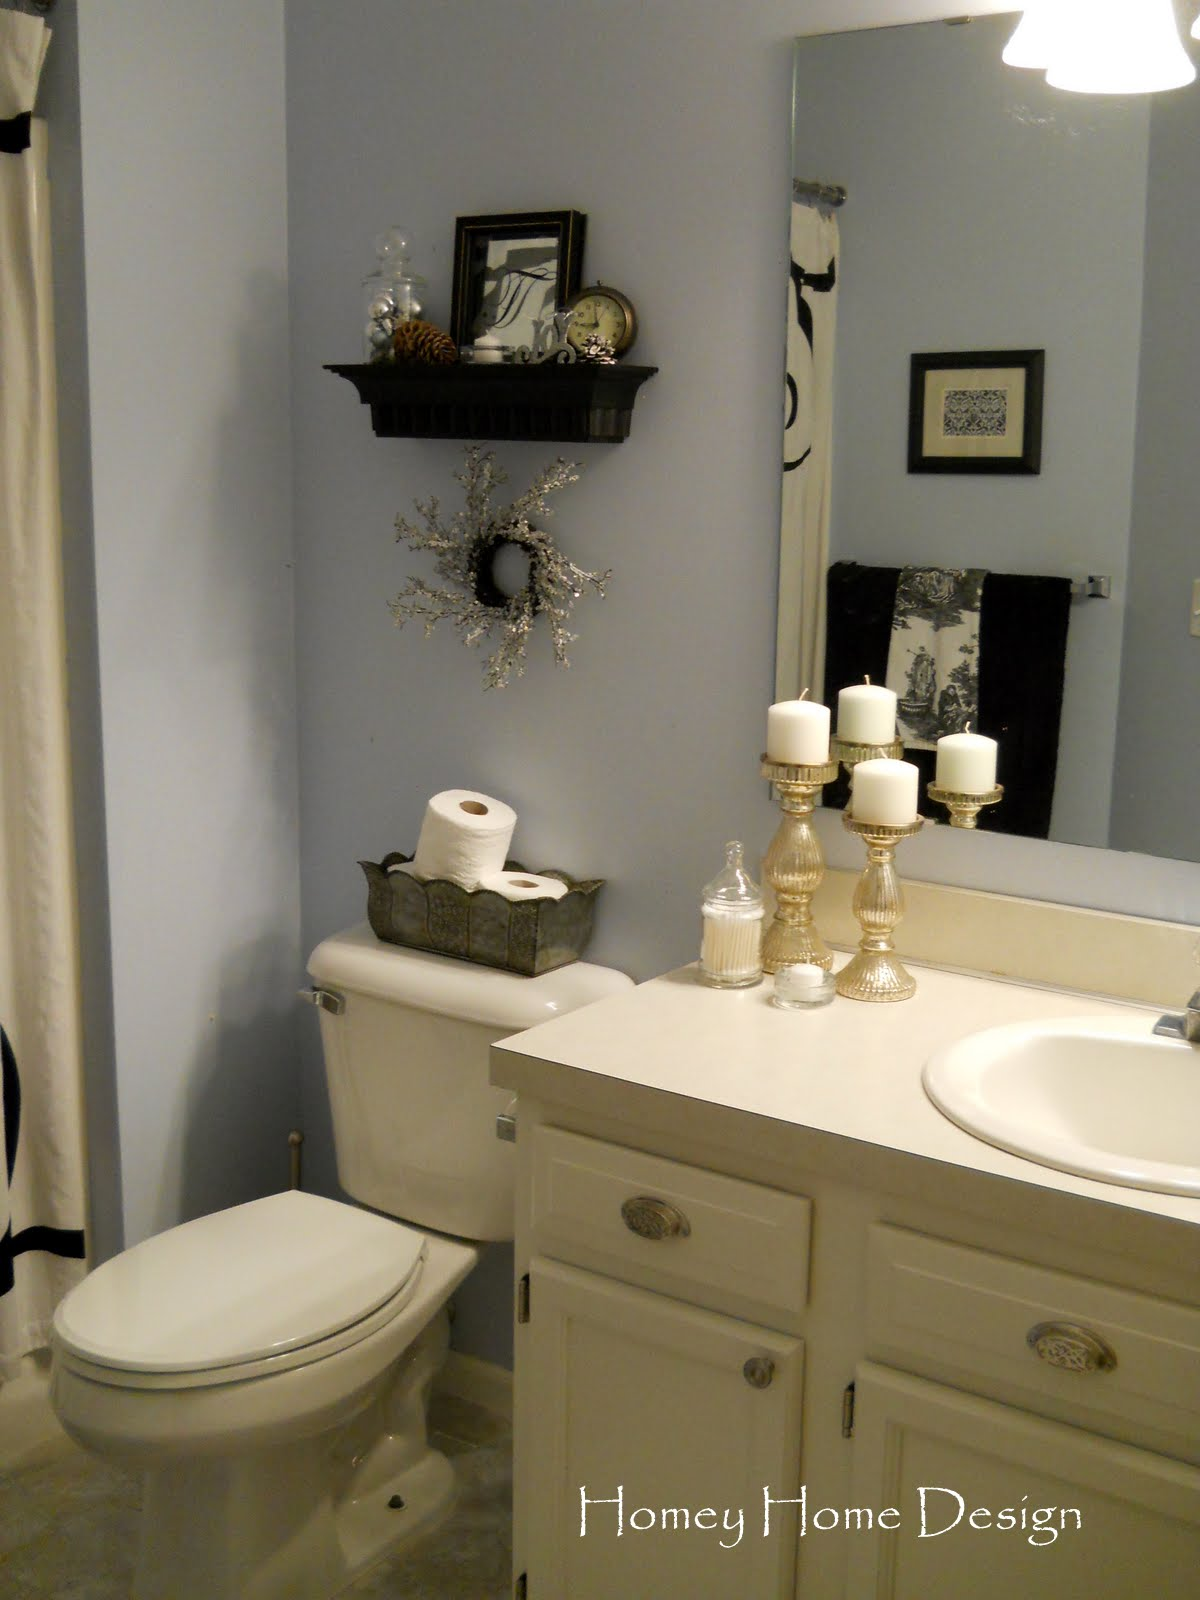 Homey home design christmas in the bathroom - Images of bathroom decoration ...